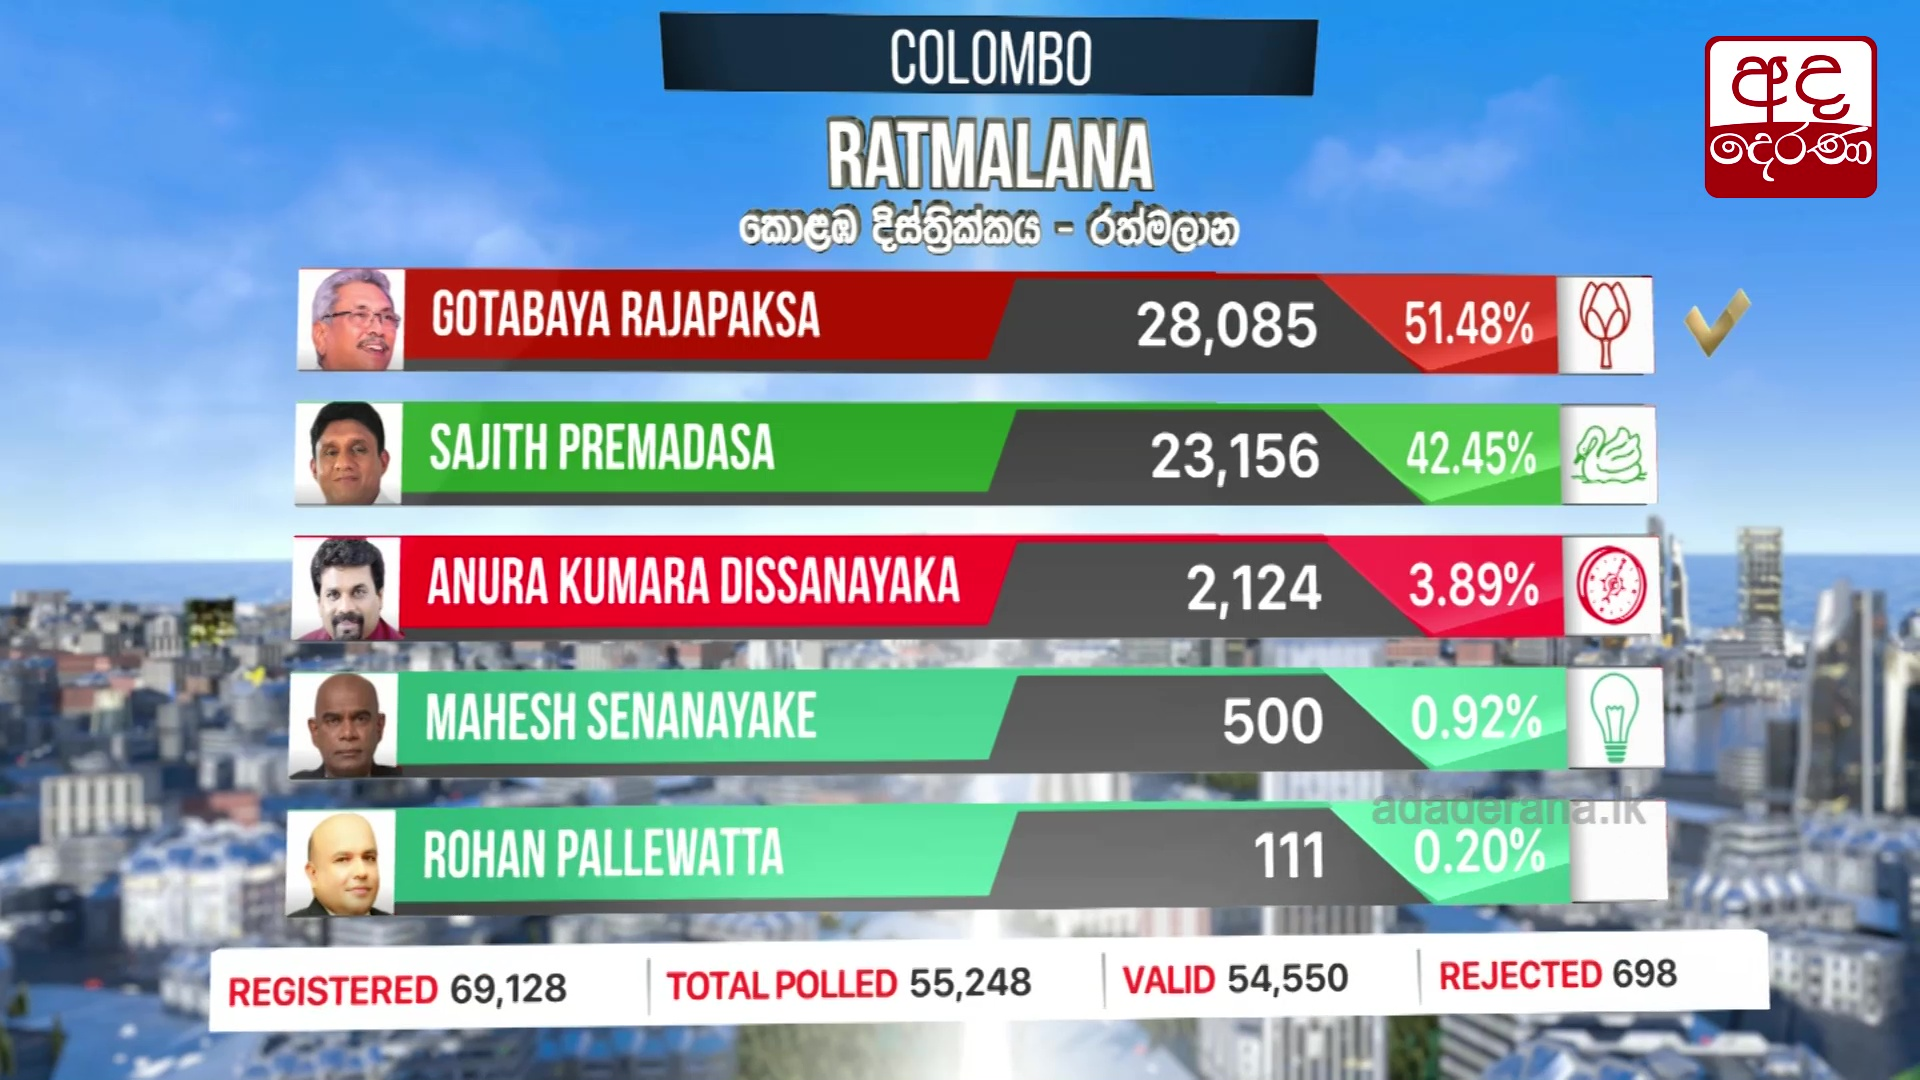 Presidential Election 2019: Rathmalana division results